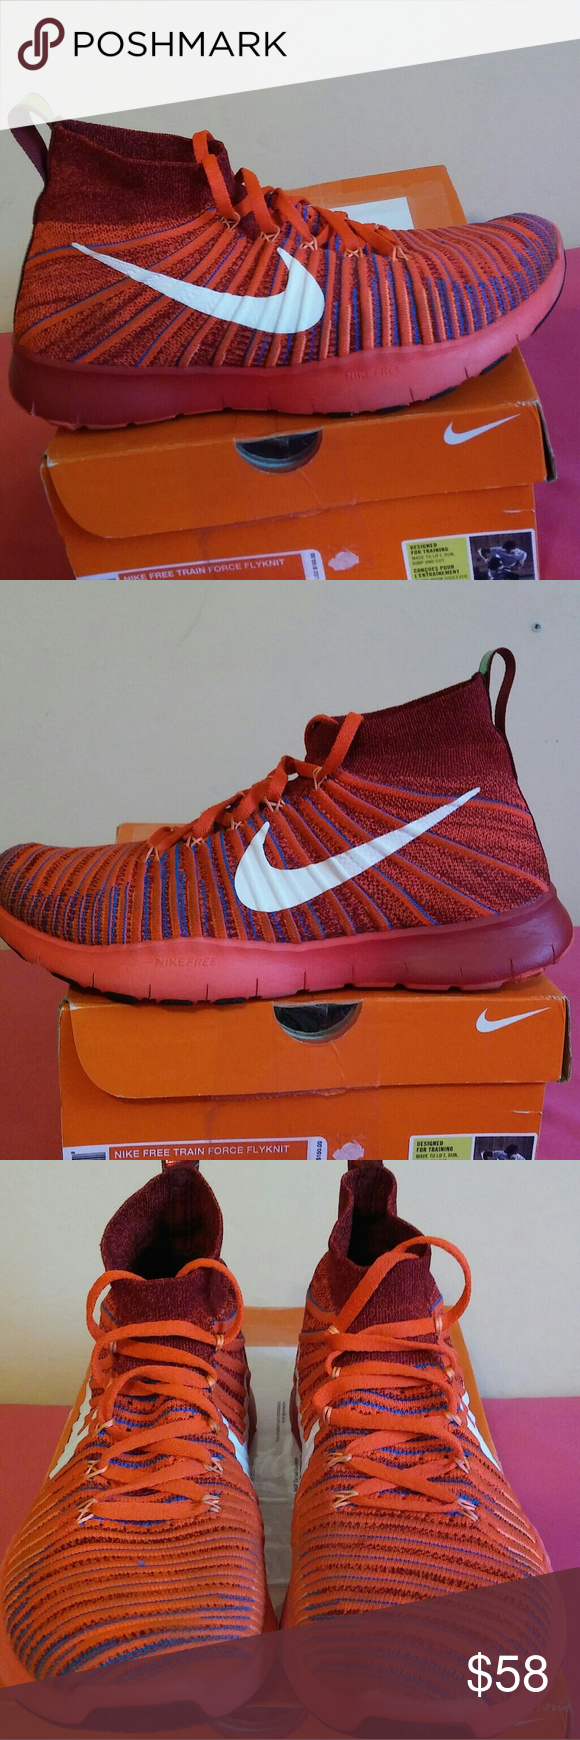 3b0736afd4e6 Nike Free Train Force Flyknit Size 9 Men... Shows is gently used and ...